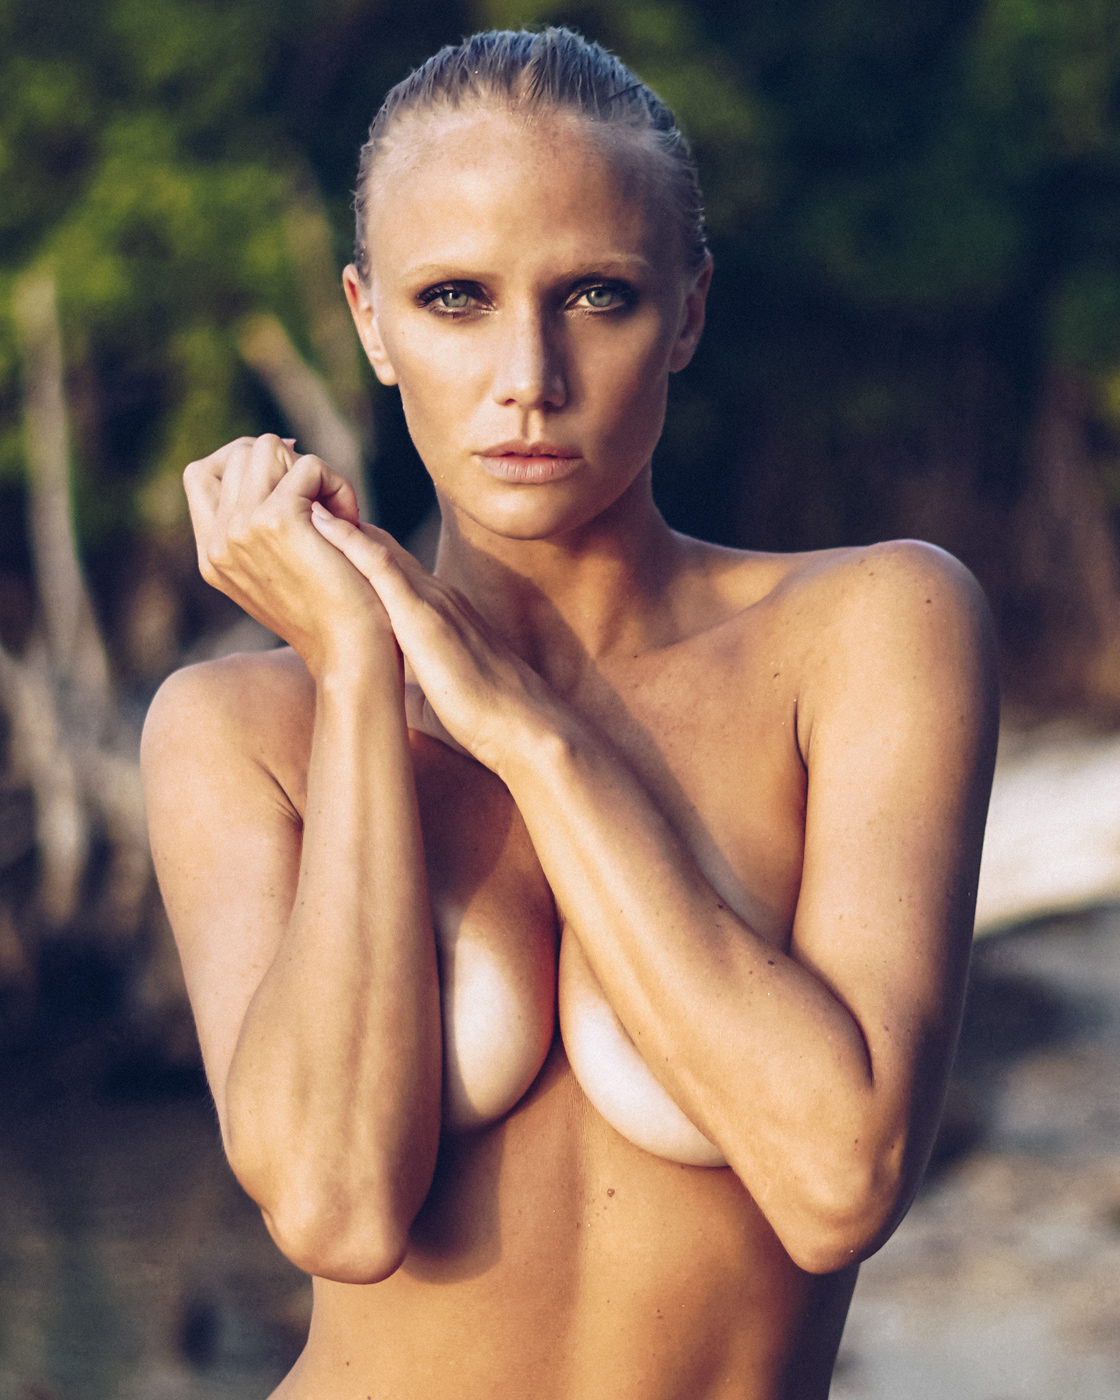 Natural Beauty Women  Natural Beauty Asa Stensson   // lionsmag.com - premium nude photography magazine